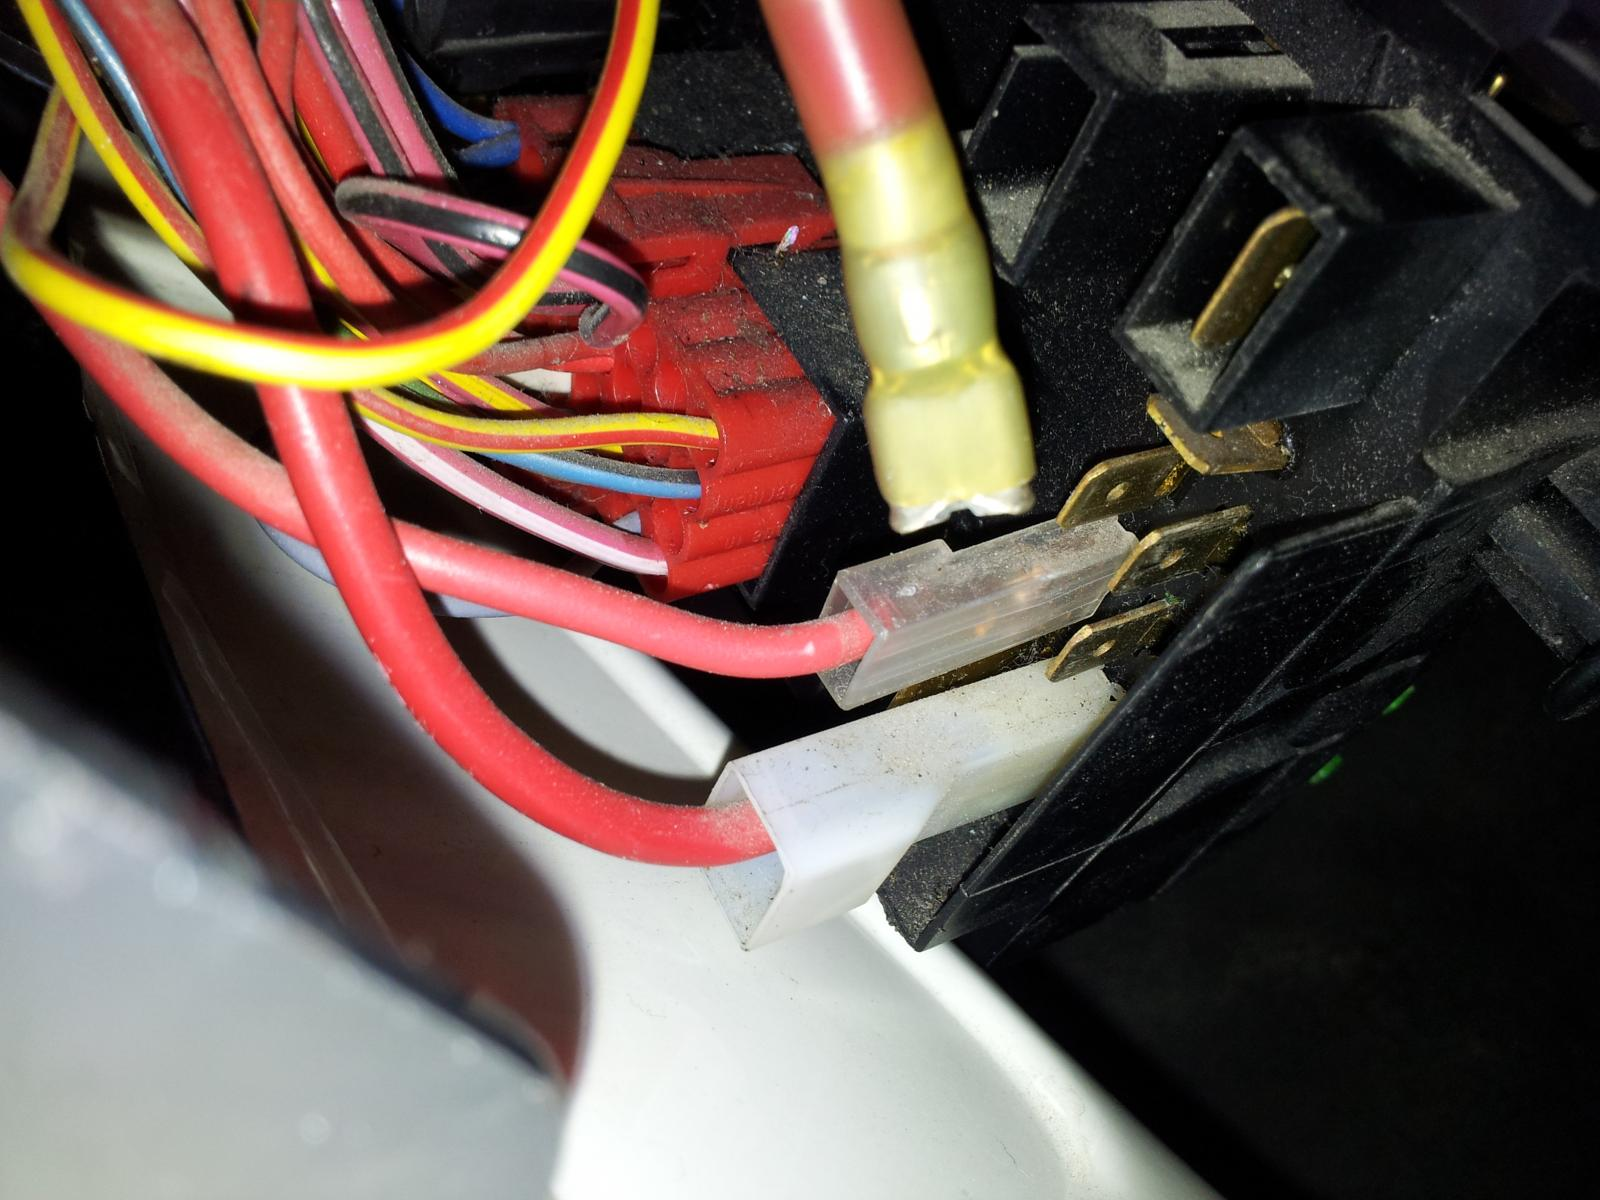 Image may have been reduced in size. Click image to view fullscreen. I  dropped the Fuse panel ...